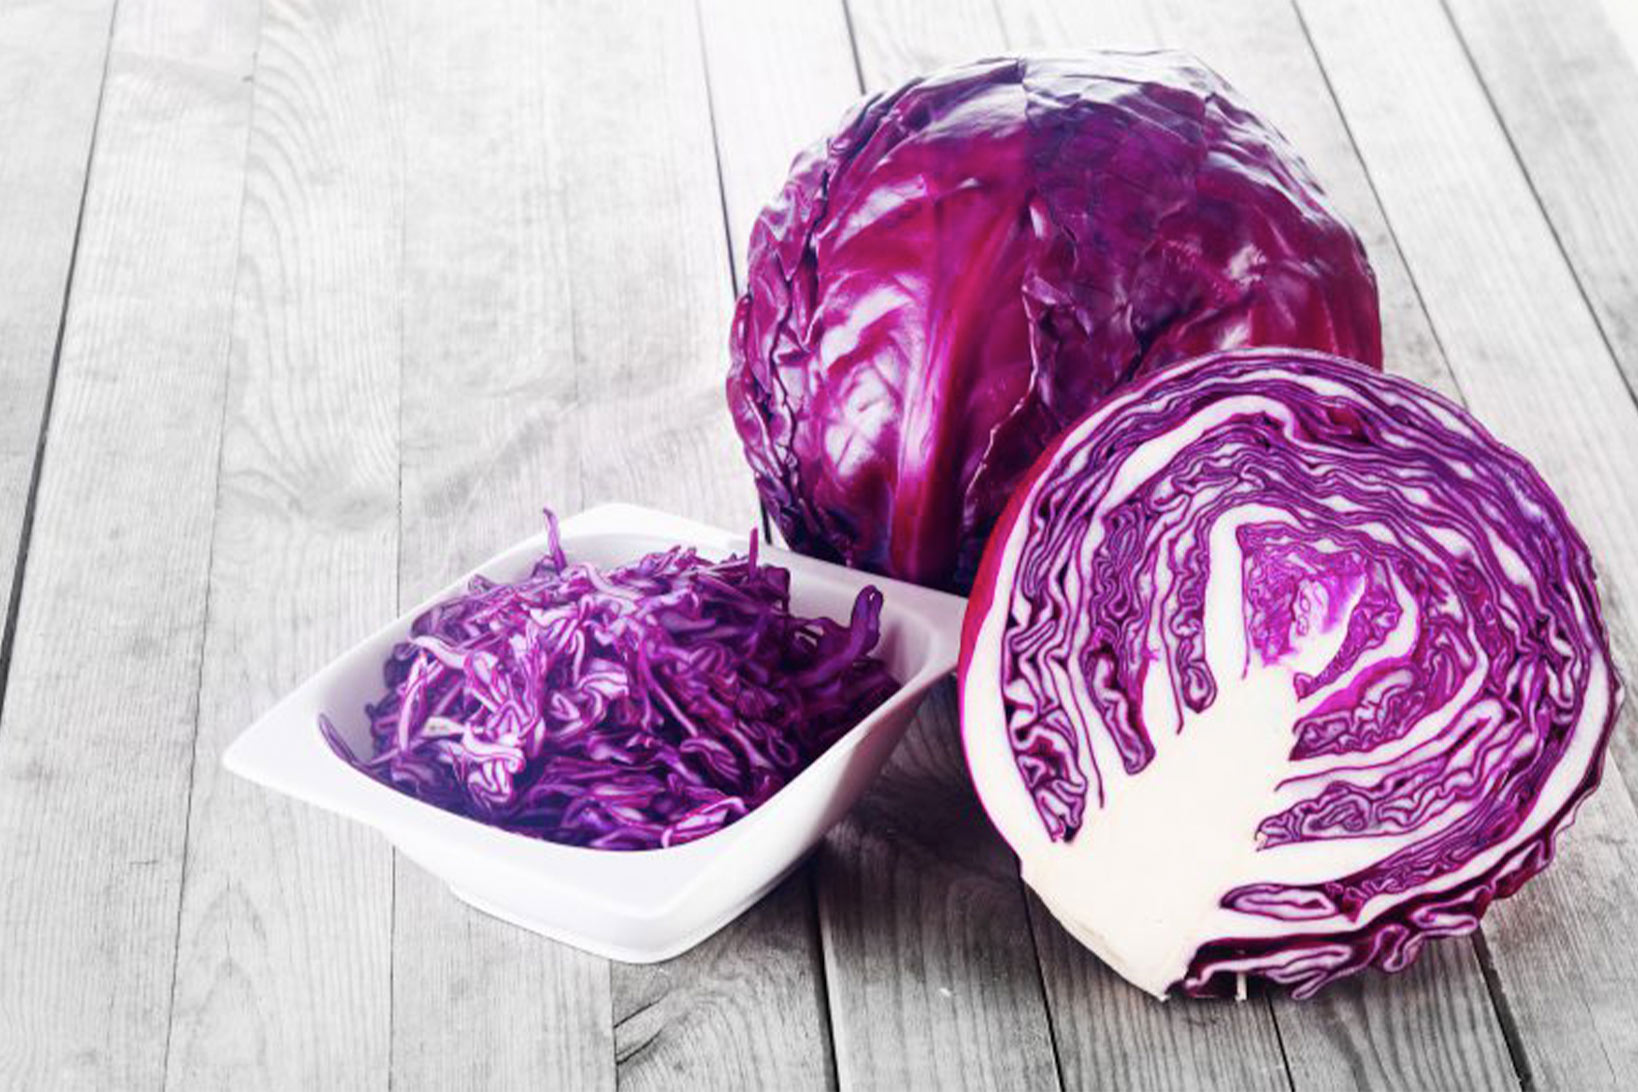 Red cabbage presented chopped in a white bowl, whole, and halved.